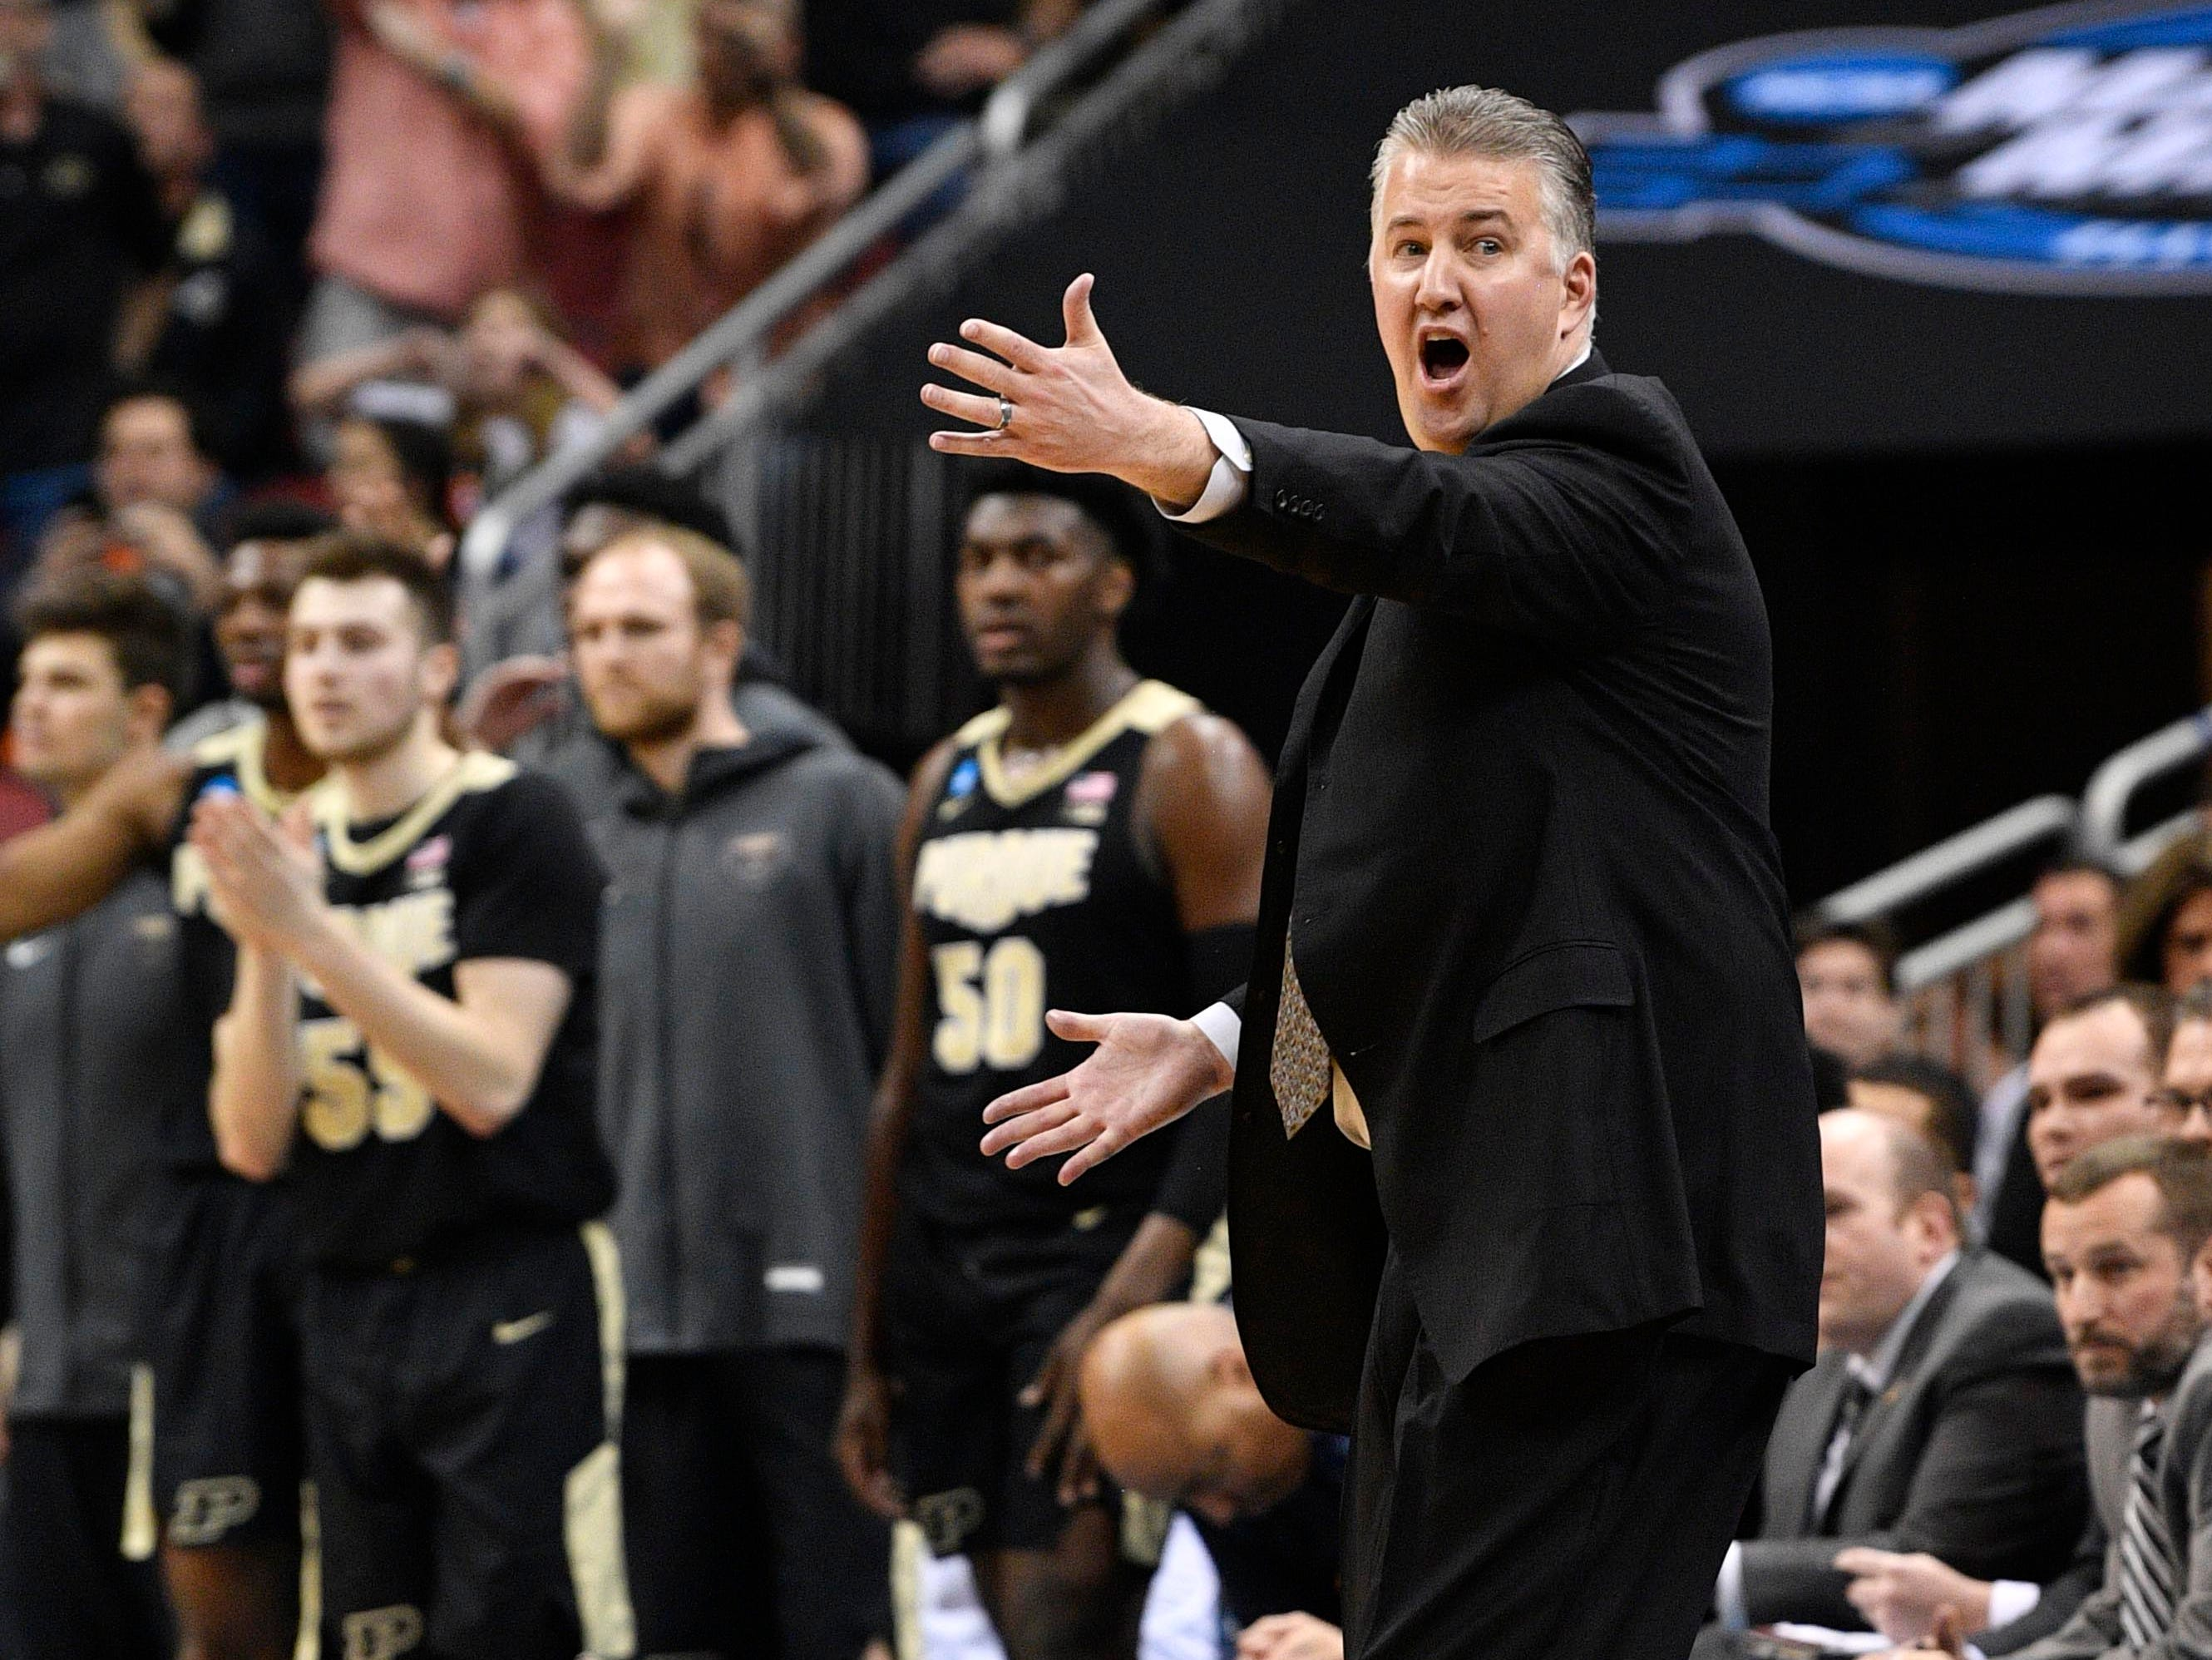 Mar 28, 2019; Louisville, KY, United States; Purdue Boilermakers head coach Matt Painter reacts during the first half in the semifinals of the south regional against the Tennessee Volunteers of the 2019 NCAA Tournament at KFC Yum Center. Mandatory Credit: Jamie Rhodes-USA TODAY Sports